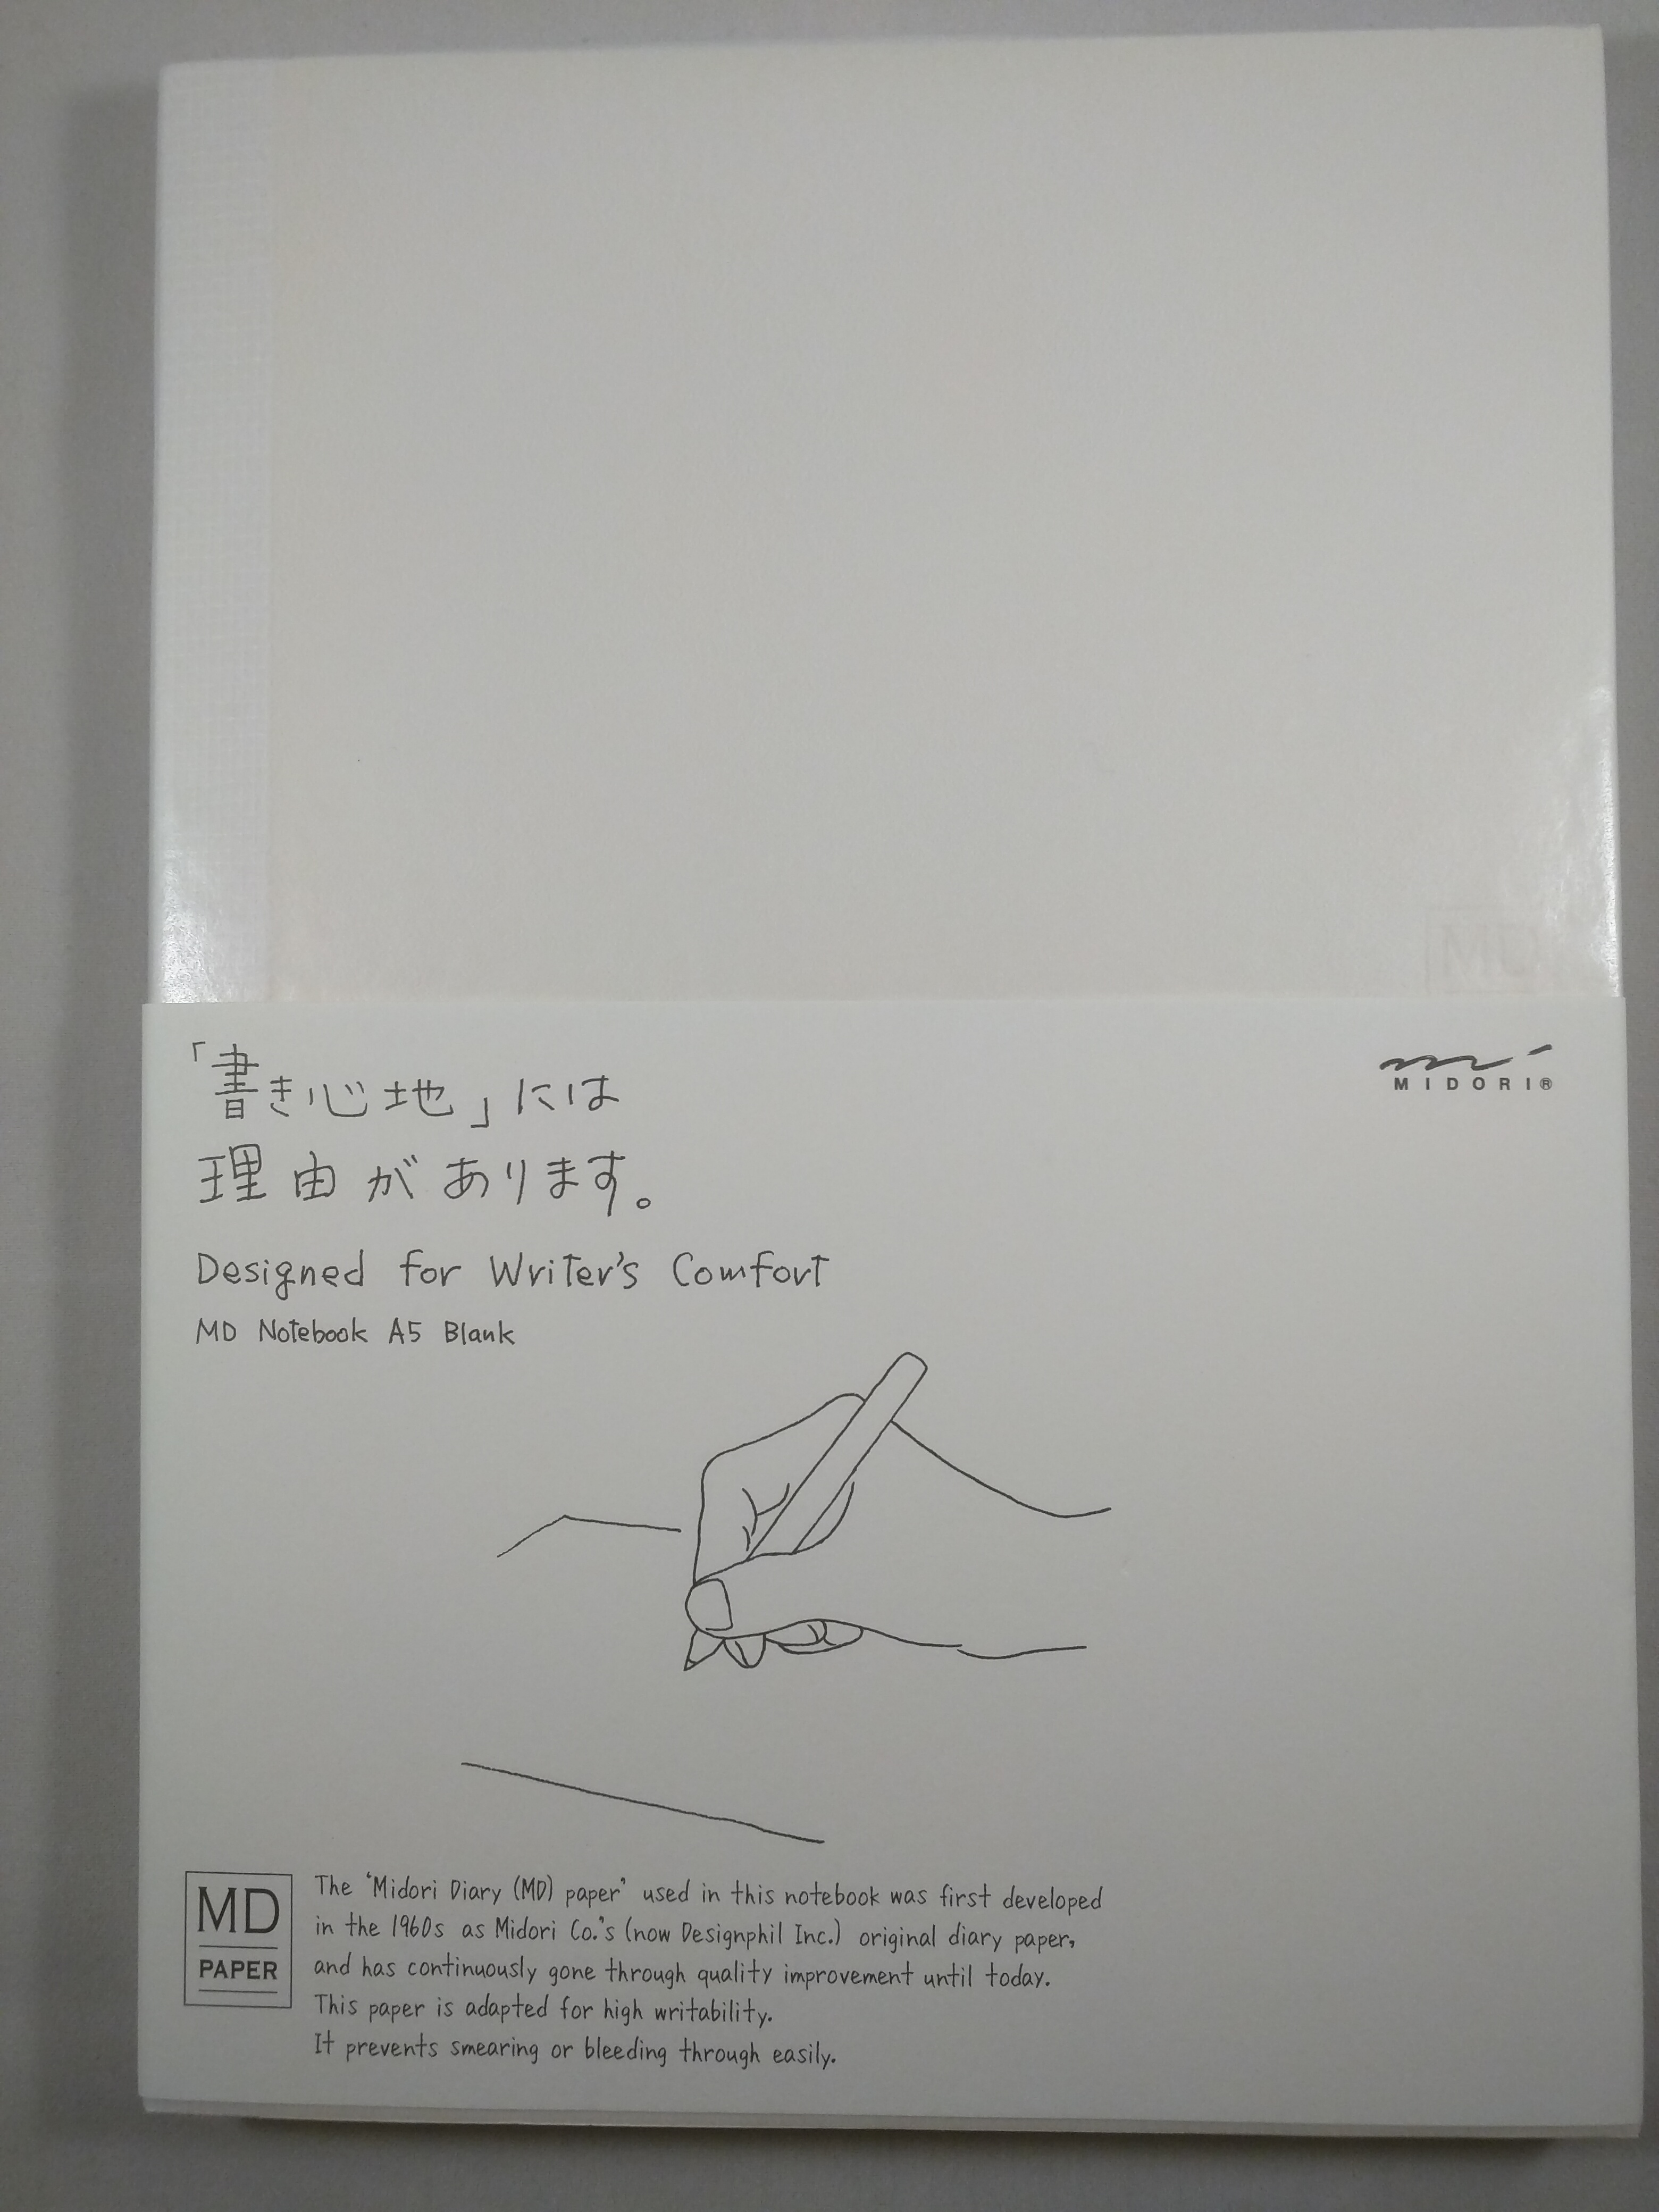 Midori MD notebook packaging front view